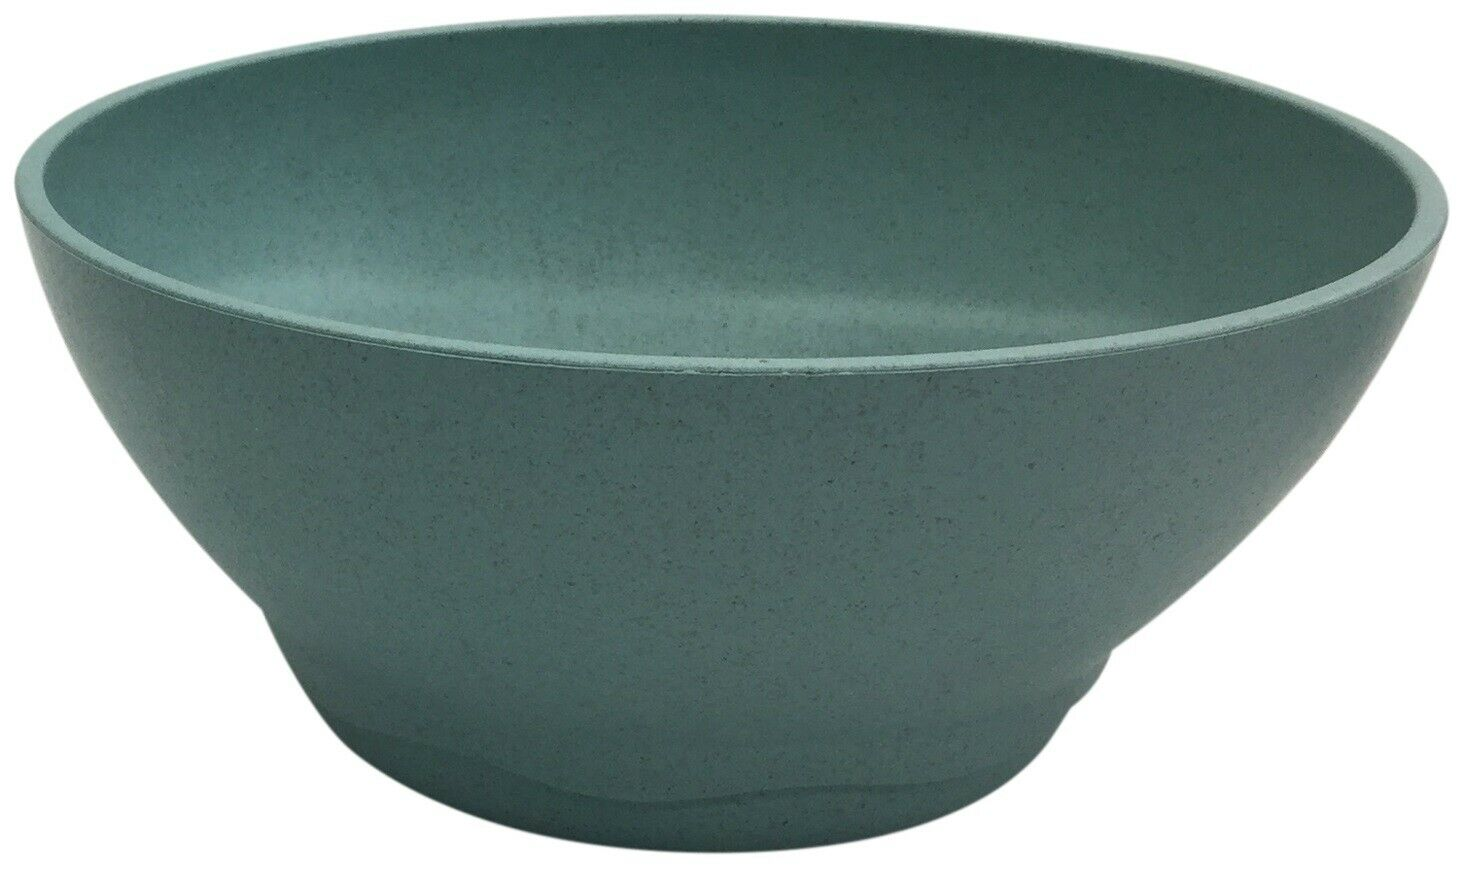 Set of 4 Blue Eco Friendly Wheat Fiber Cereal Bowls 500ml Soup Bowls